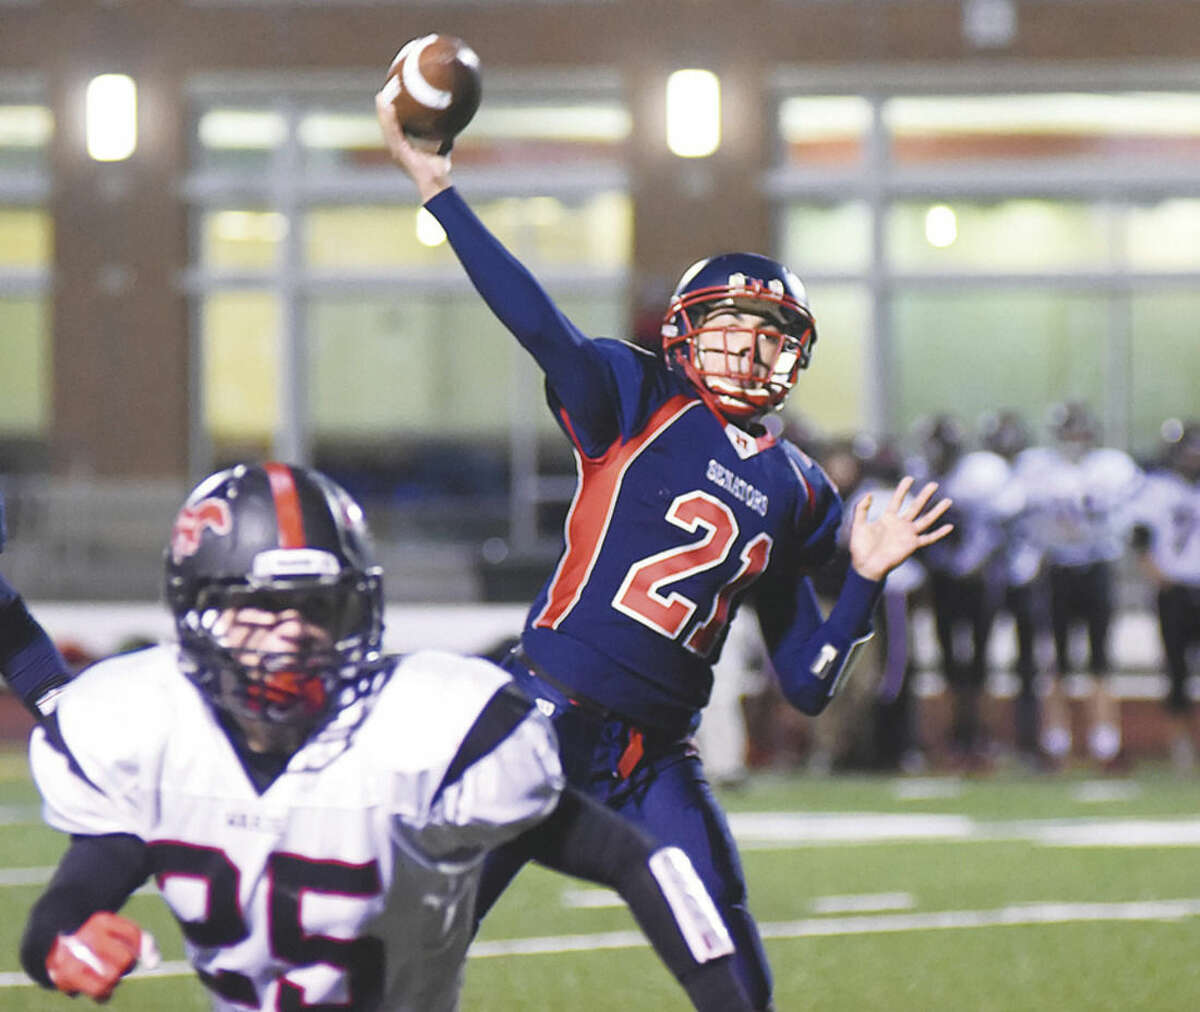 Hour photo/John Nash Brien McMahon sophomore quarterback Chris Druin gain a lot of valuable experience this season before getting hurt in the final week.